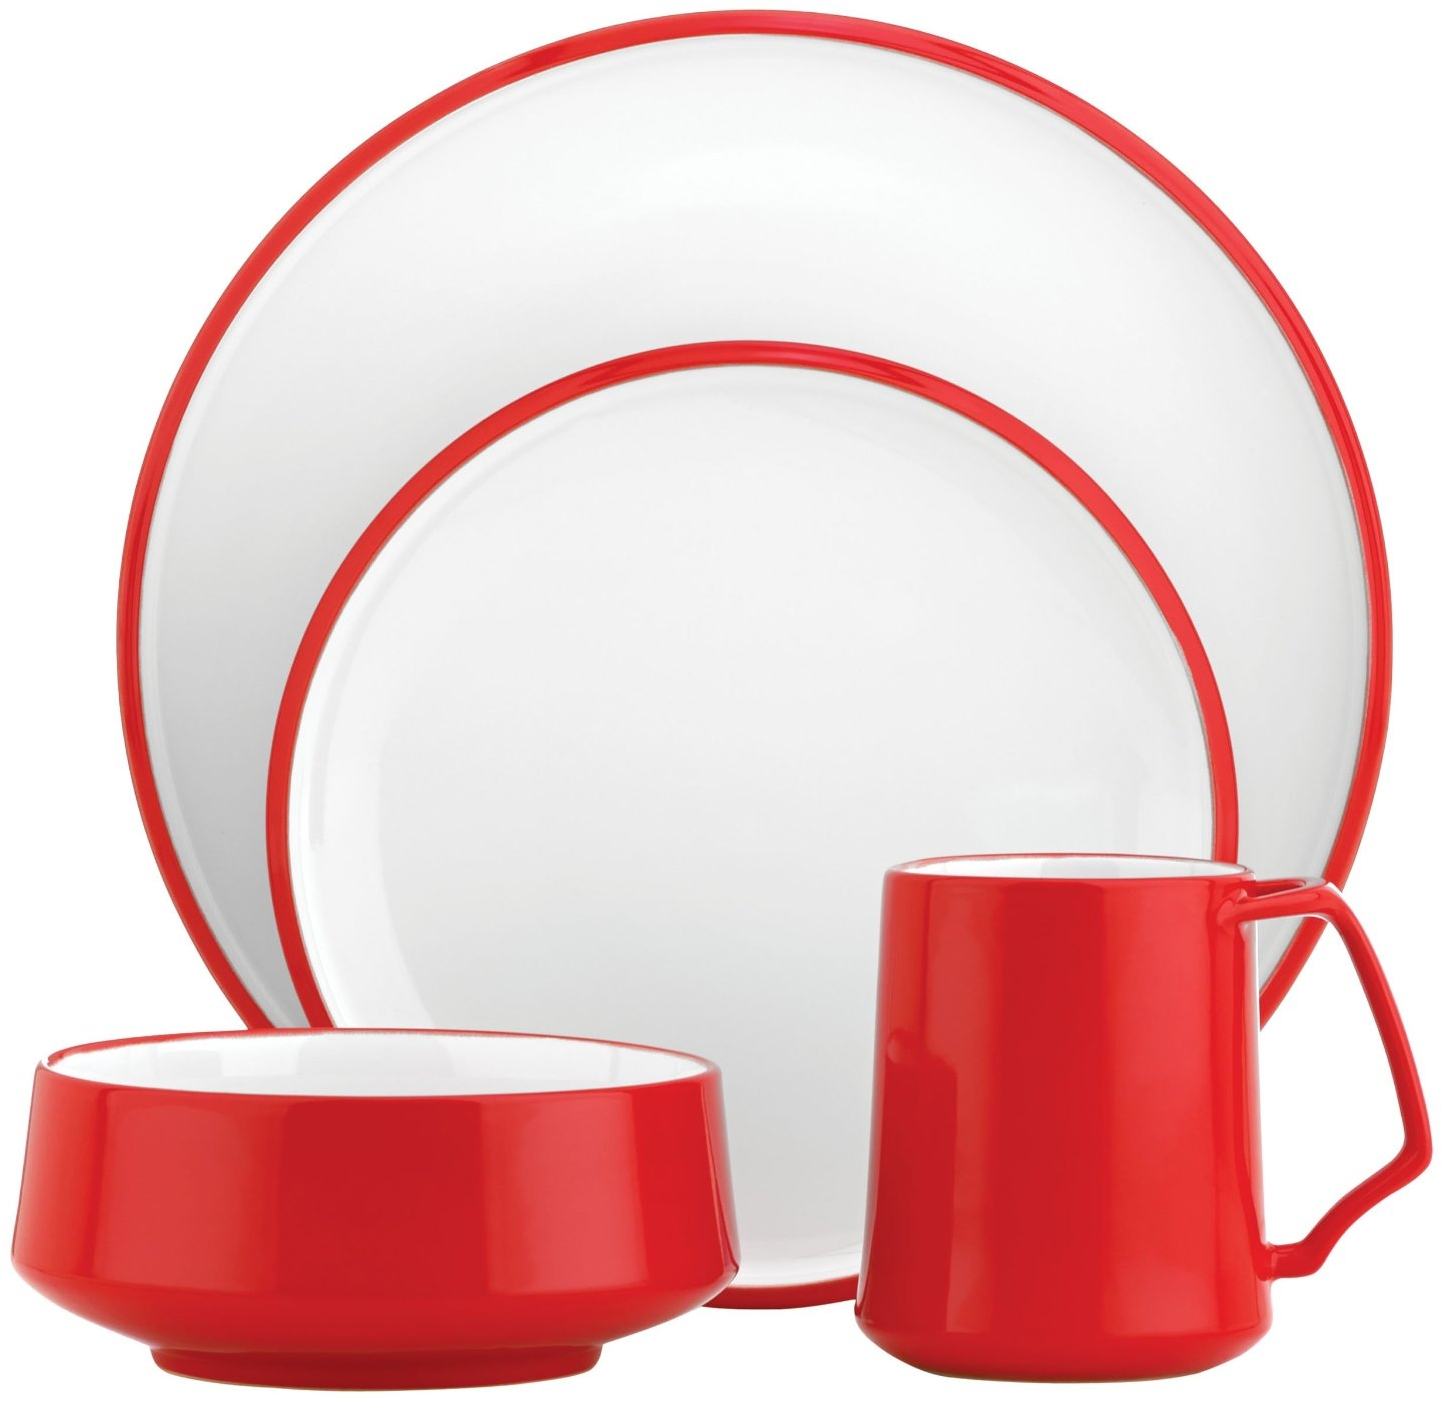 Dansk Kobenstyle 4 Piece Chili Red Stoneware Dishware Set, Service for 1